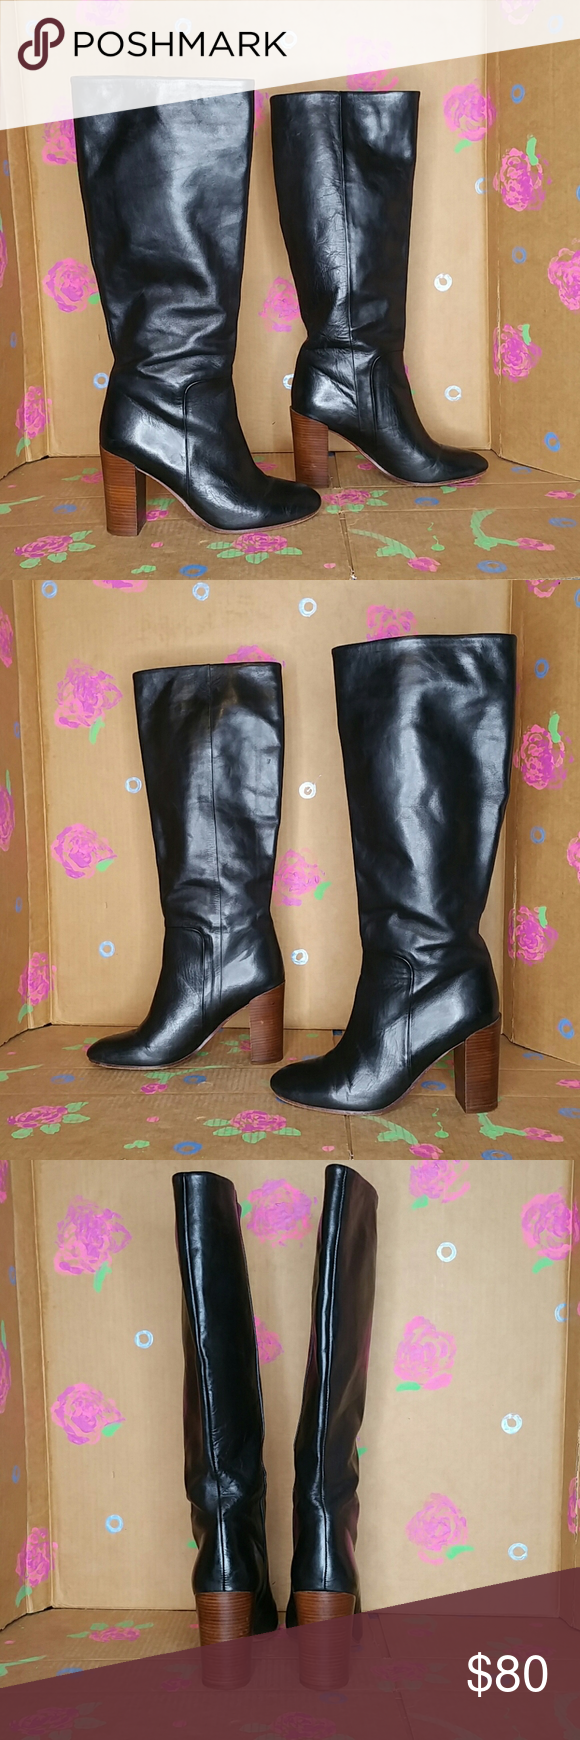 Lands End Black Leather Tall Boots High